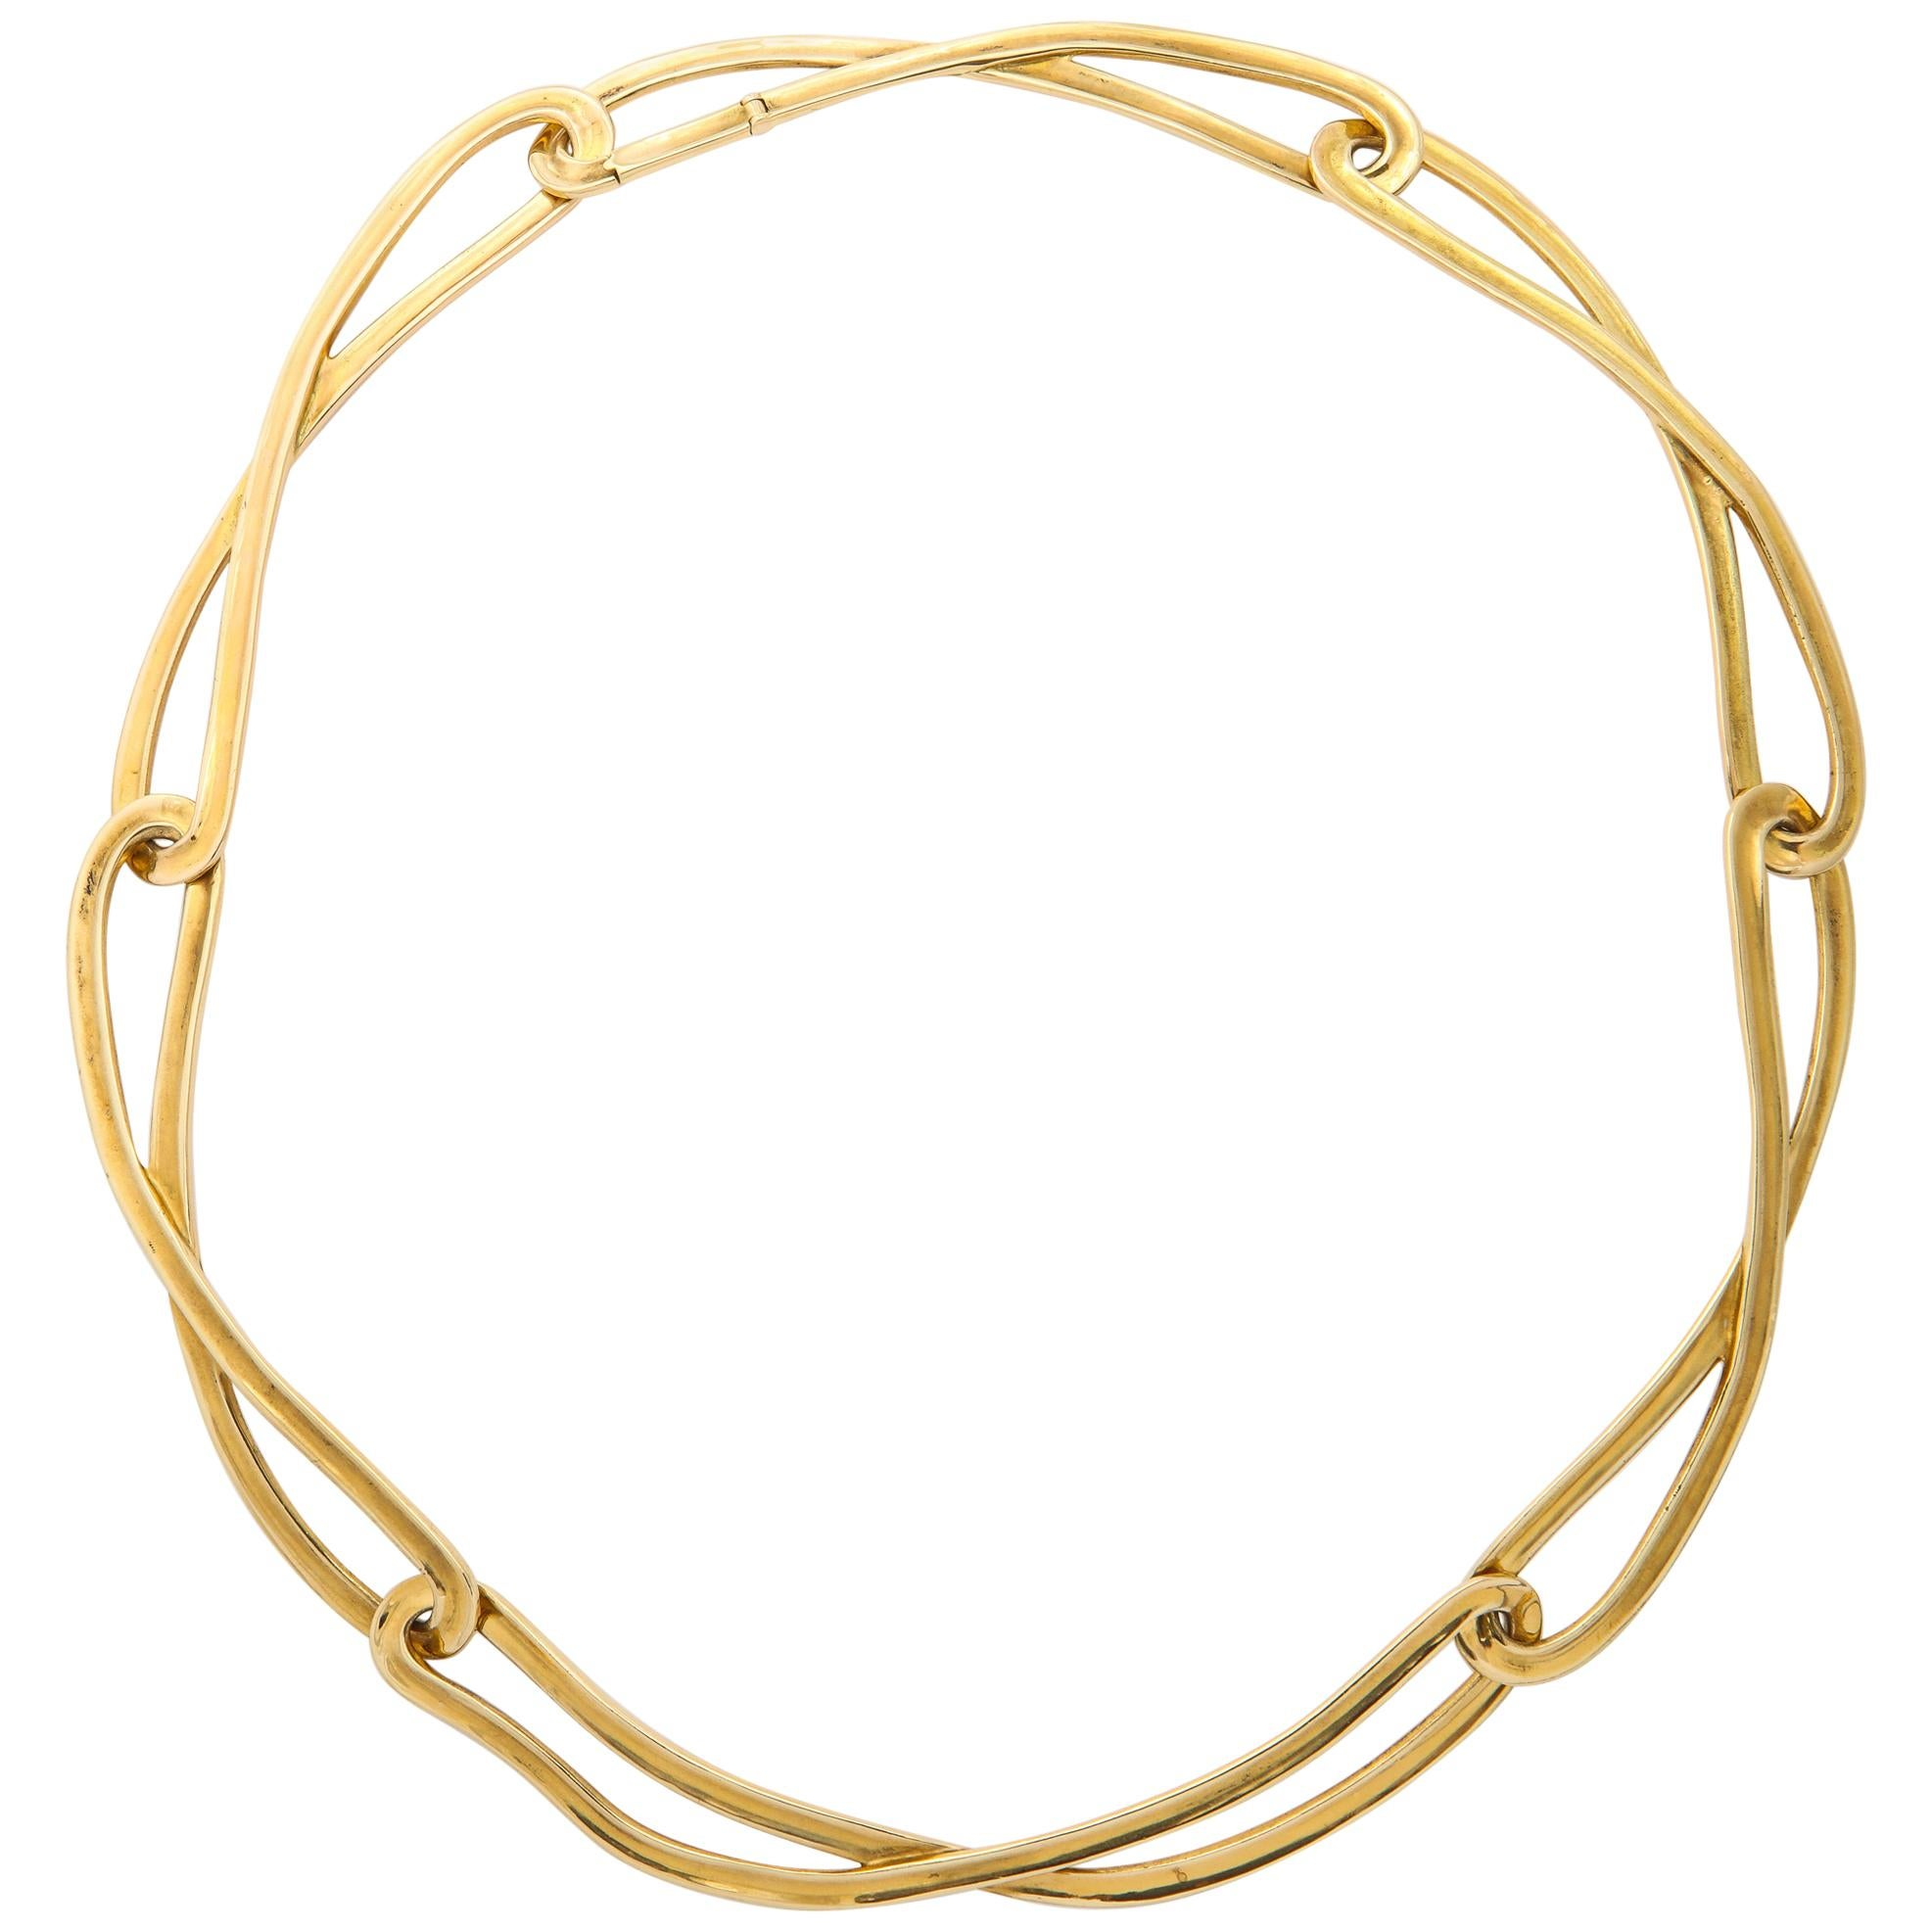 Angela Cummings Tiffany & Co. Gold Figure-8 Link Necklace